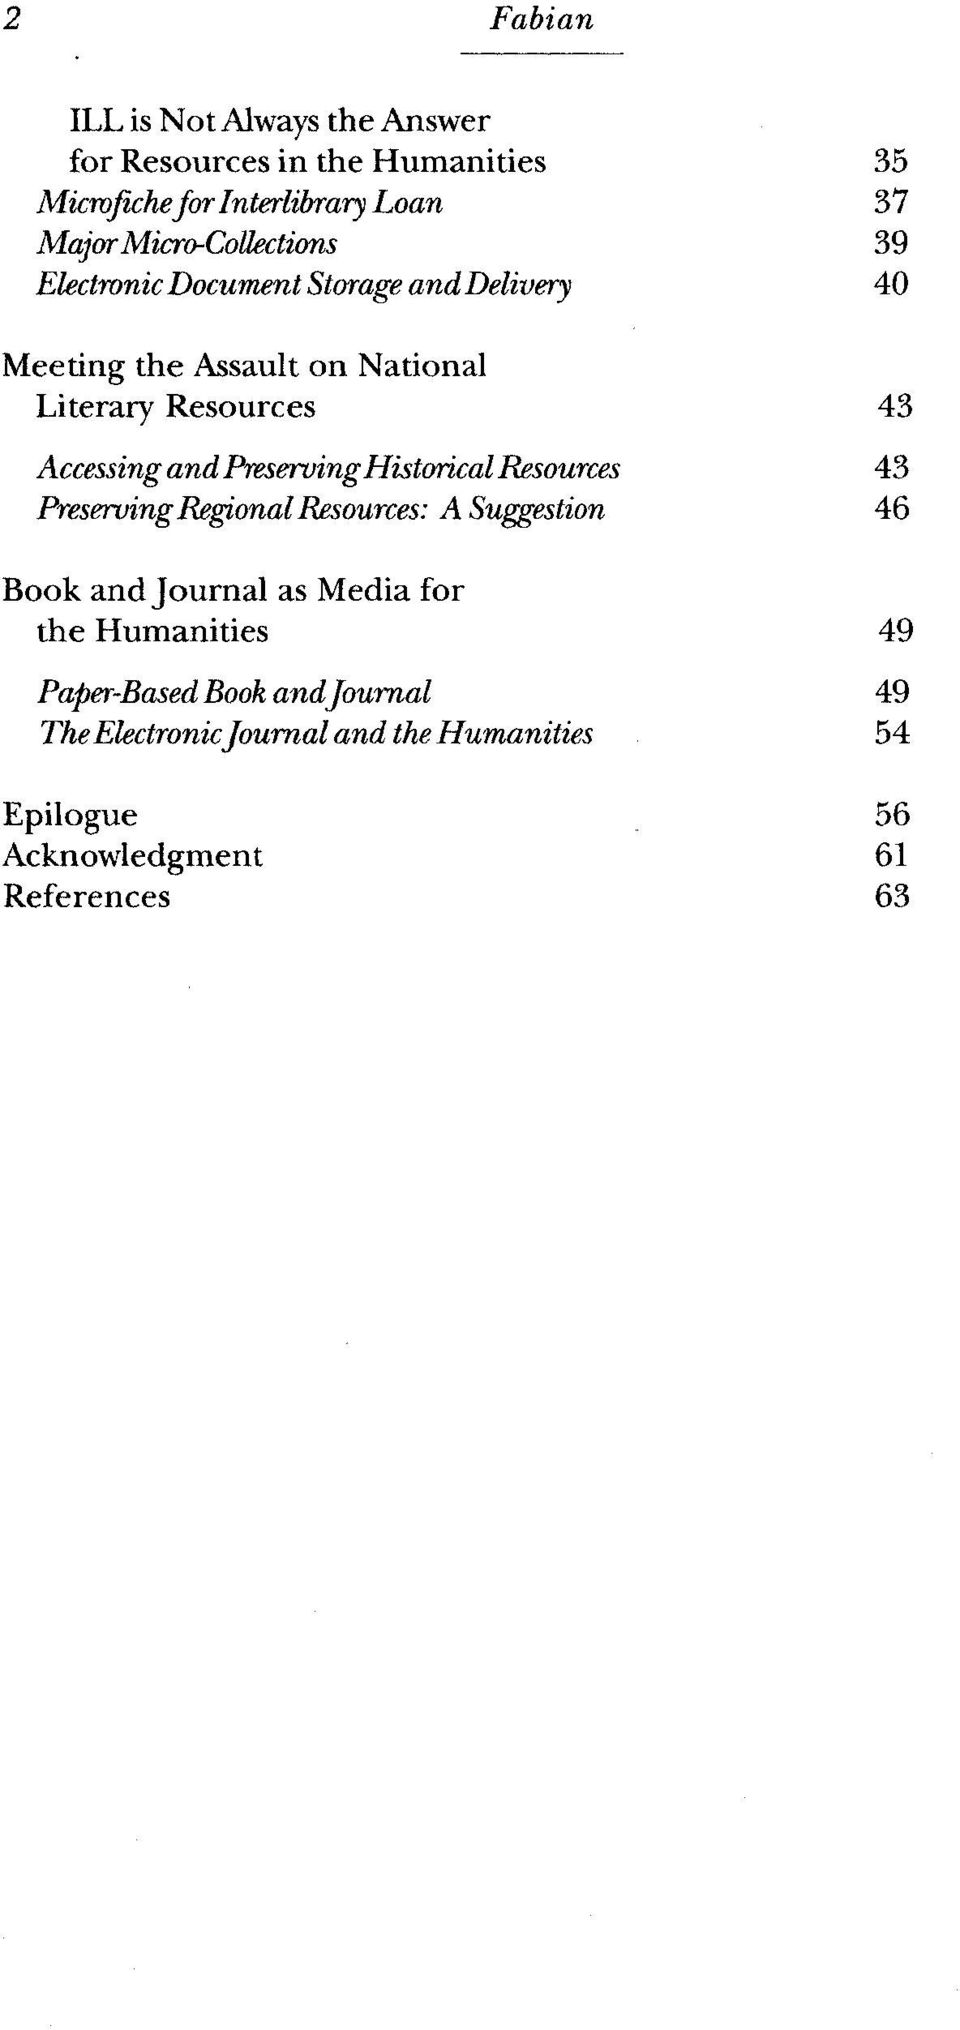 Accessing and Preserving Historical Resources 43 PreservingRegional Resources: A Suggestion 46 Book and Journal as Media